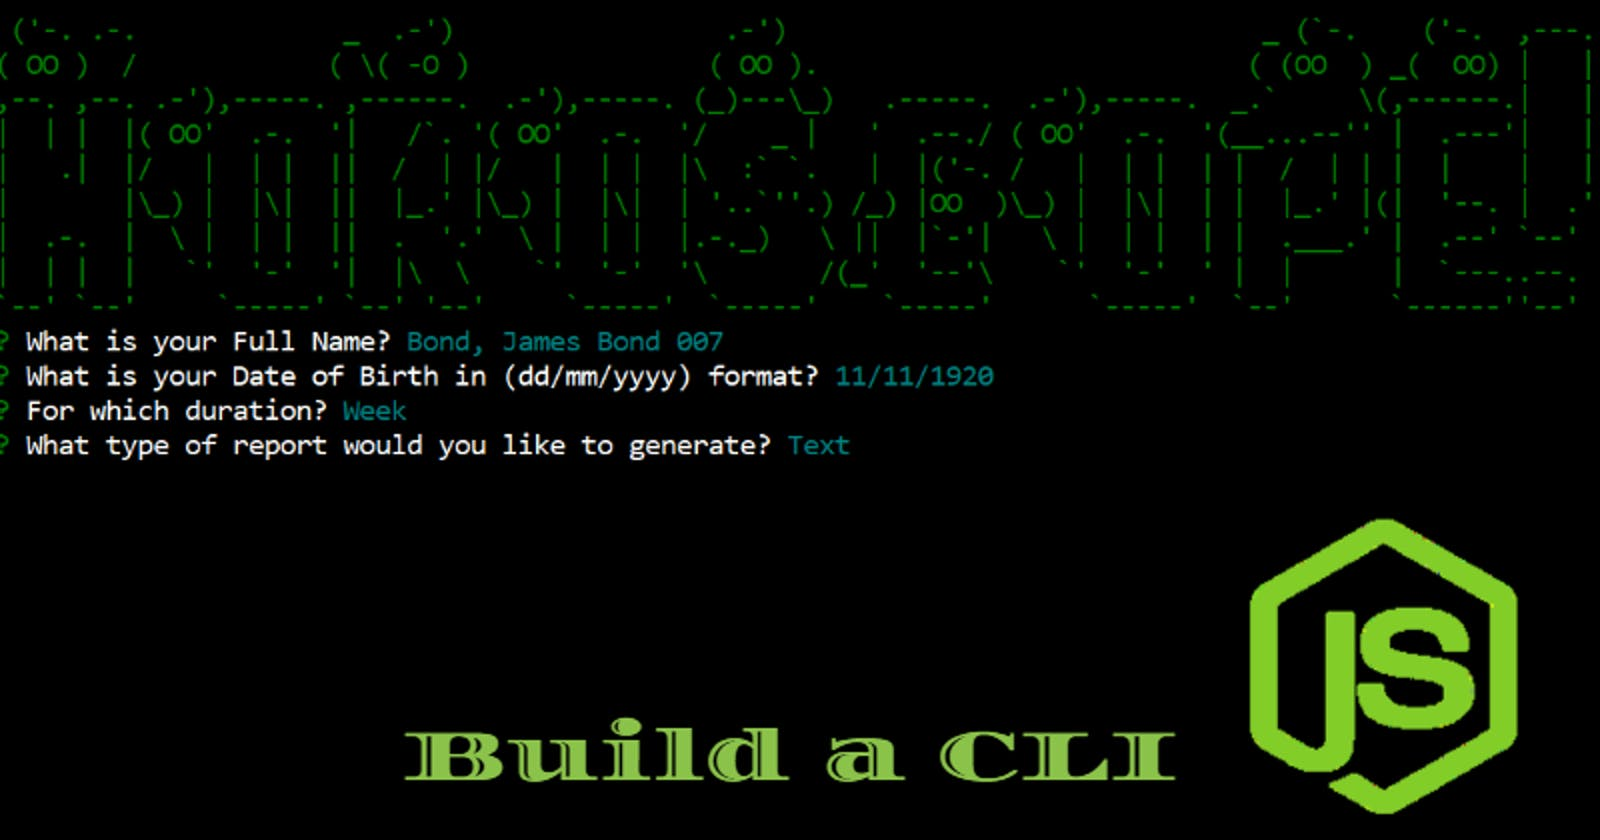 A step by step guide to your first CLI(Command Line Interface) app using Node.js